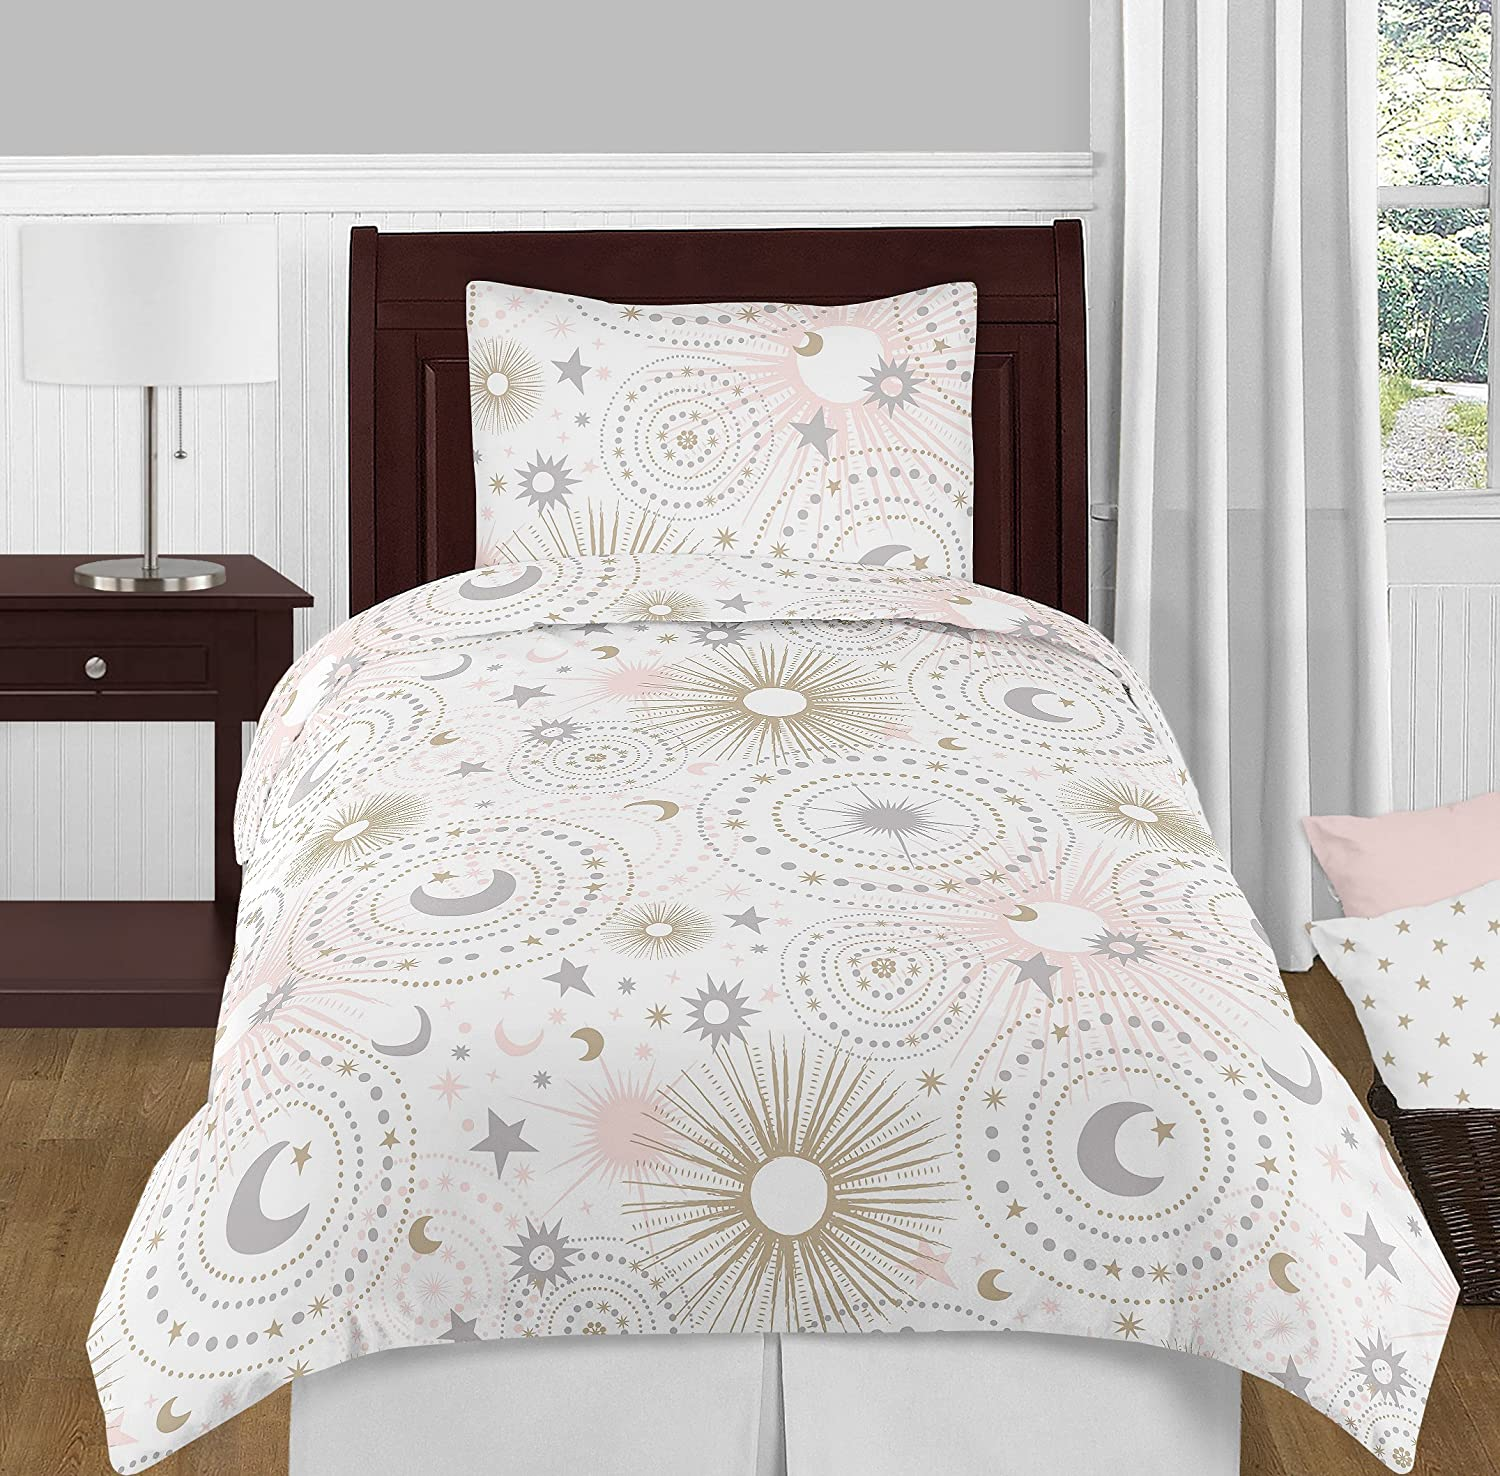 Amazon Com Blush Pink Gold Grey And White Star And Moon Celestial Girl Twin Kid Childrens Bedding Comforter Set By Sweet Jojo Designs 4 Pieces Home Kitchen